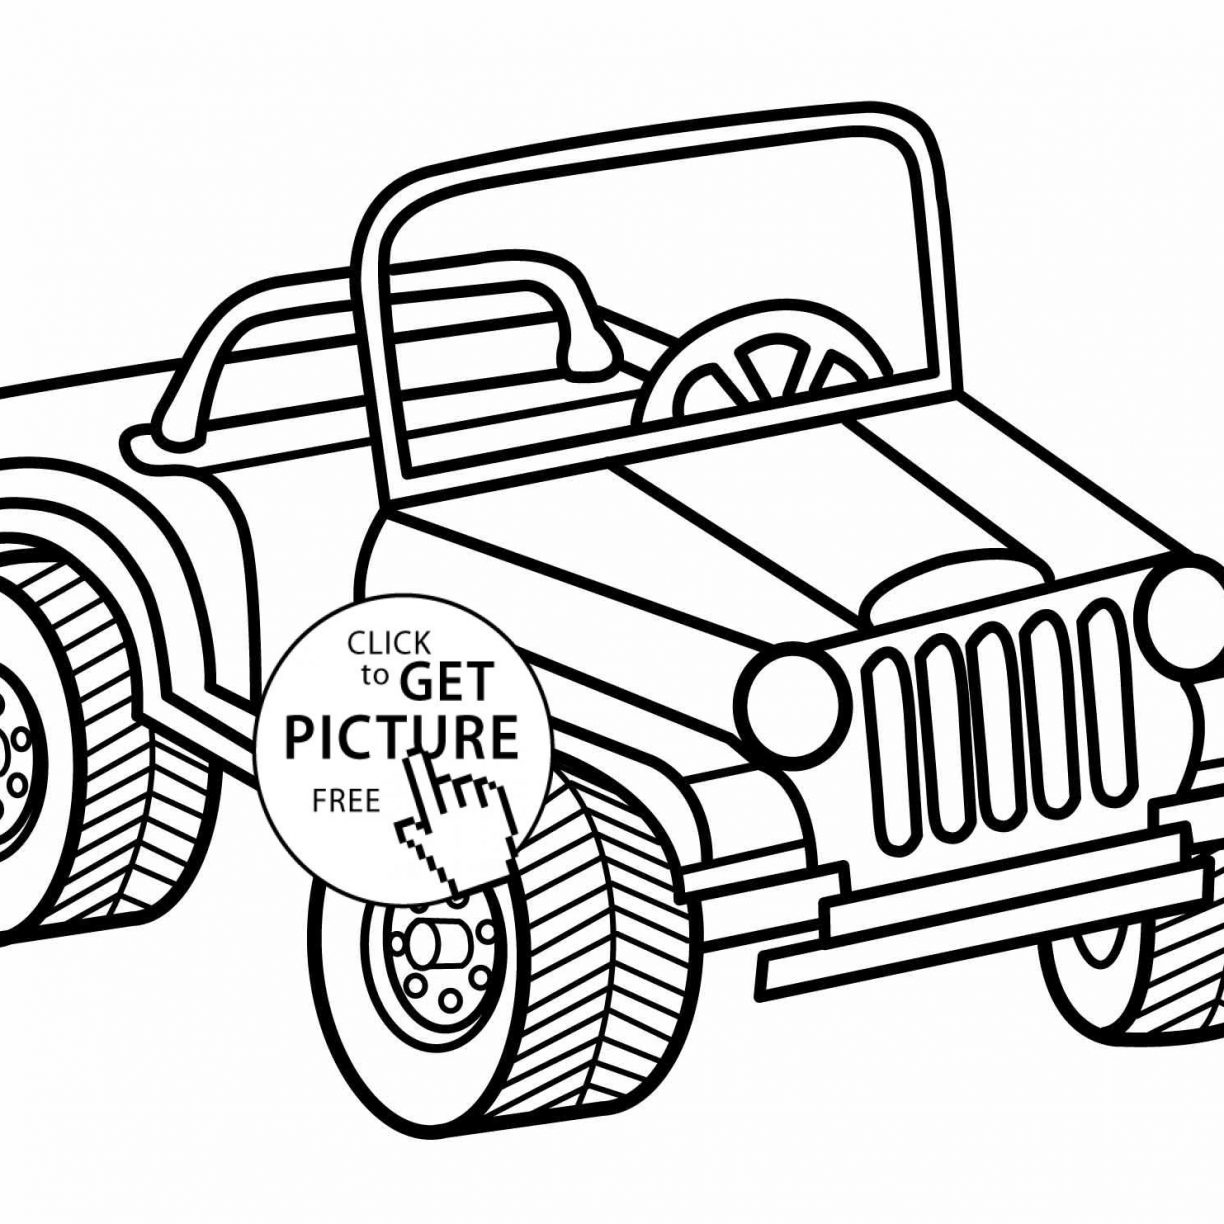 1224x1224 Transportation Coloring Pages Sea Bus Public Free General Water